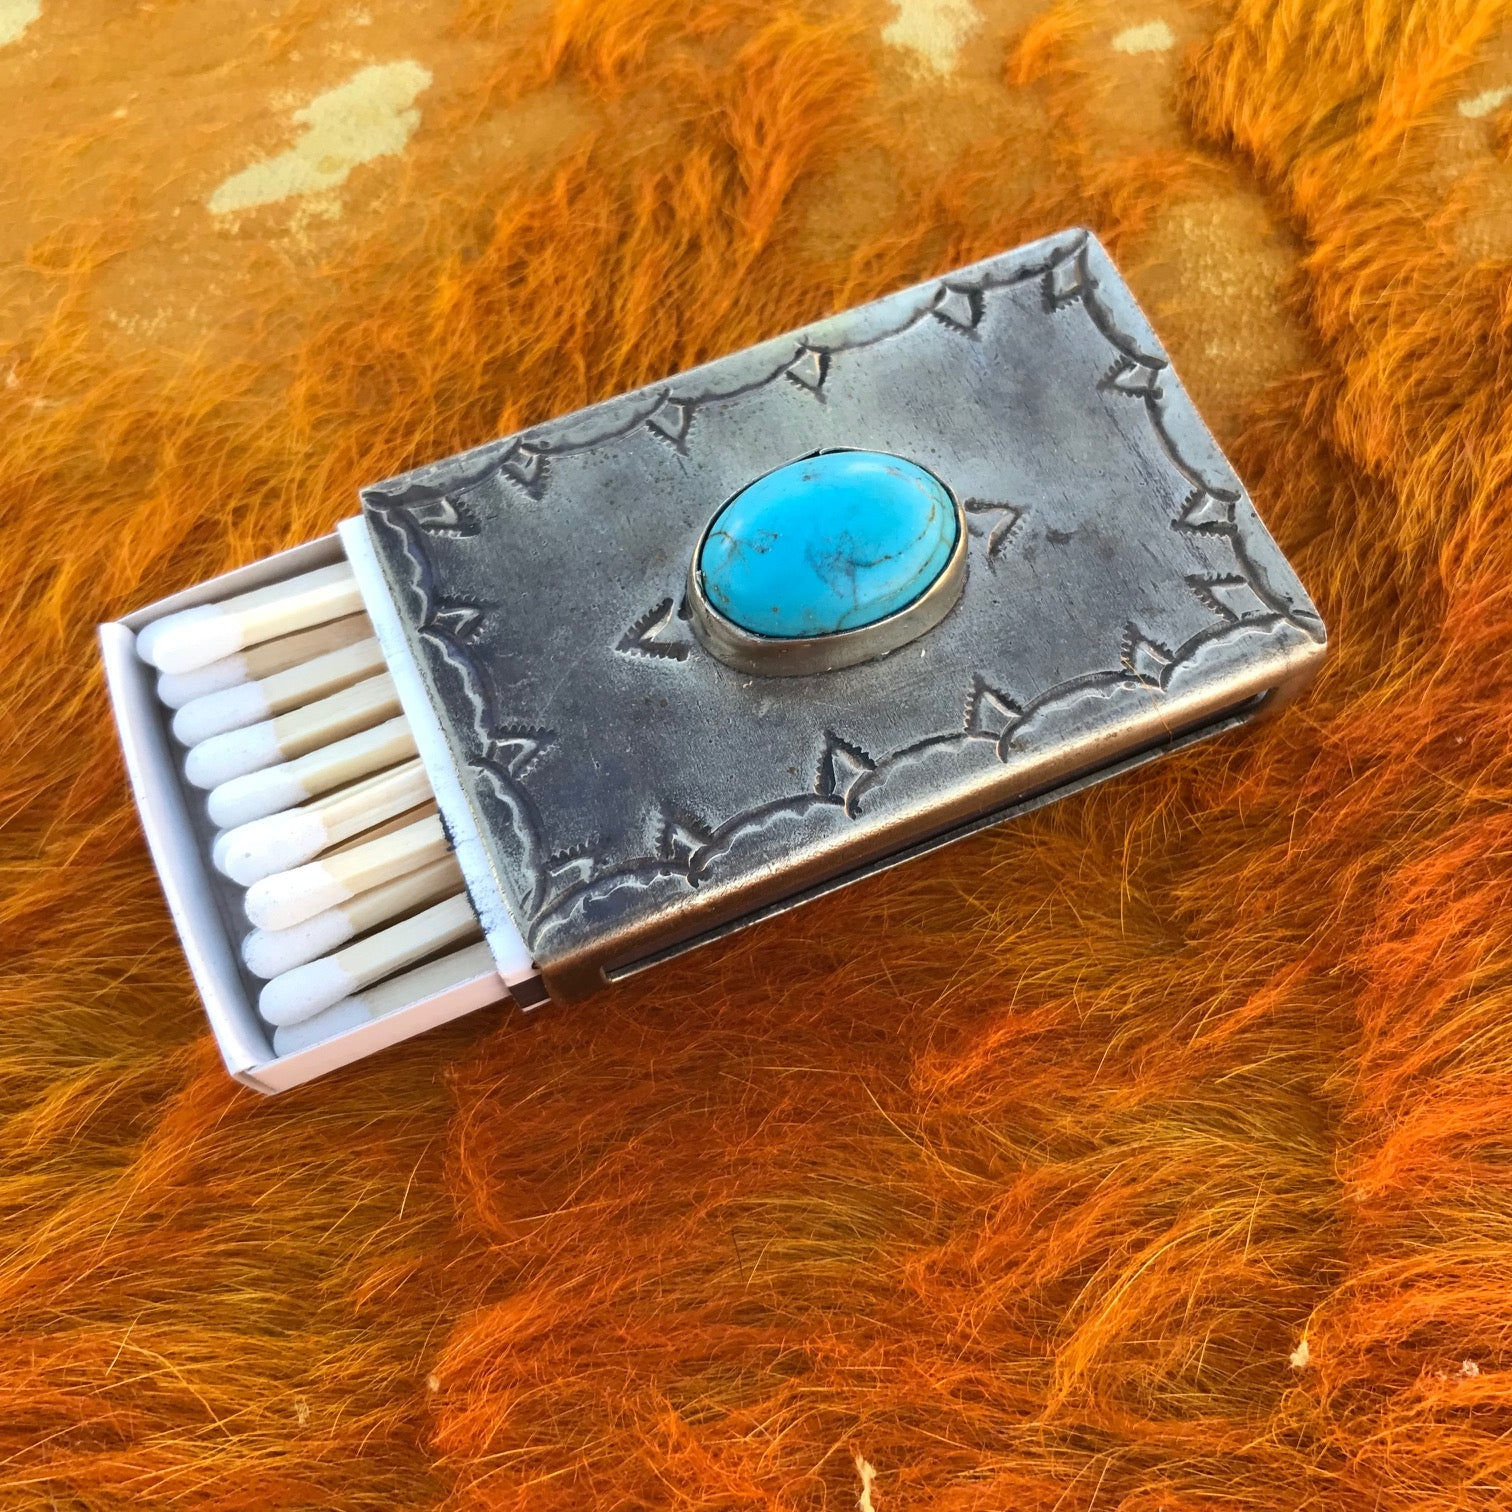 Stamped Matchbox with Turquoise